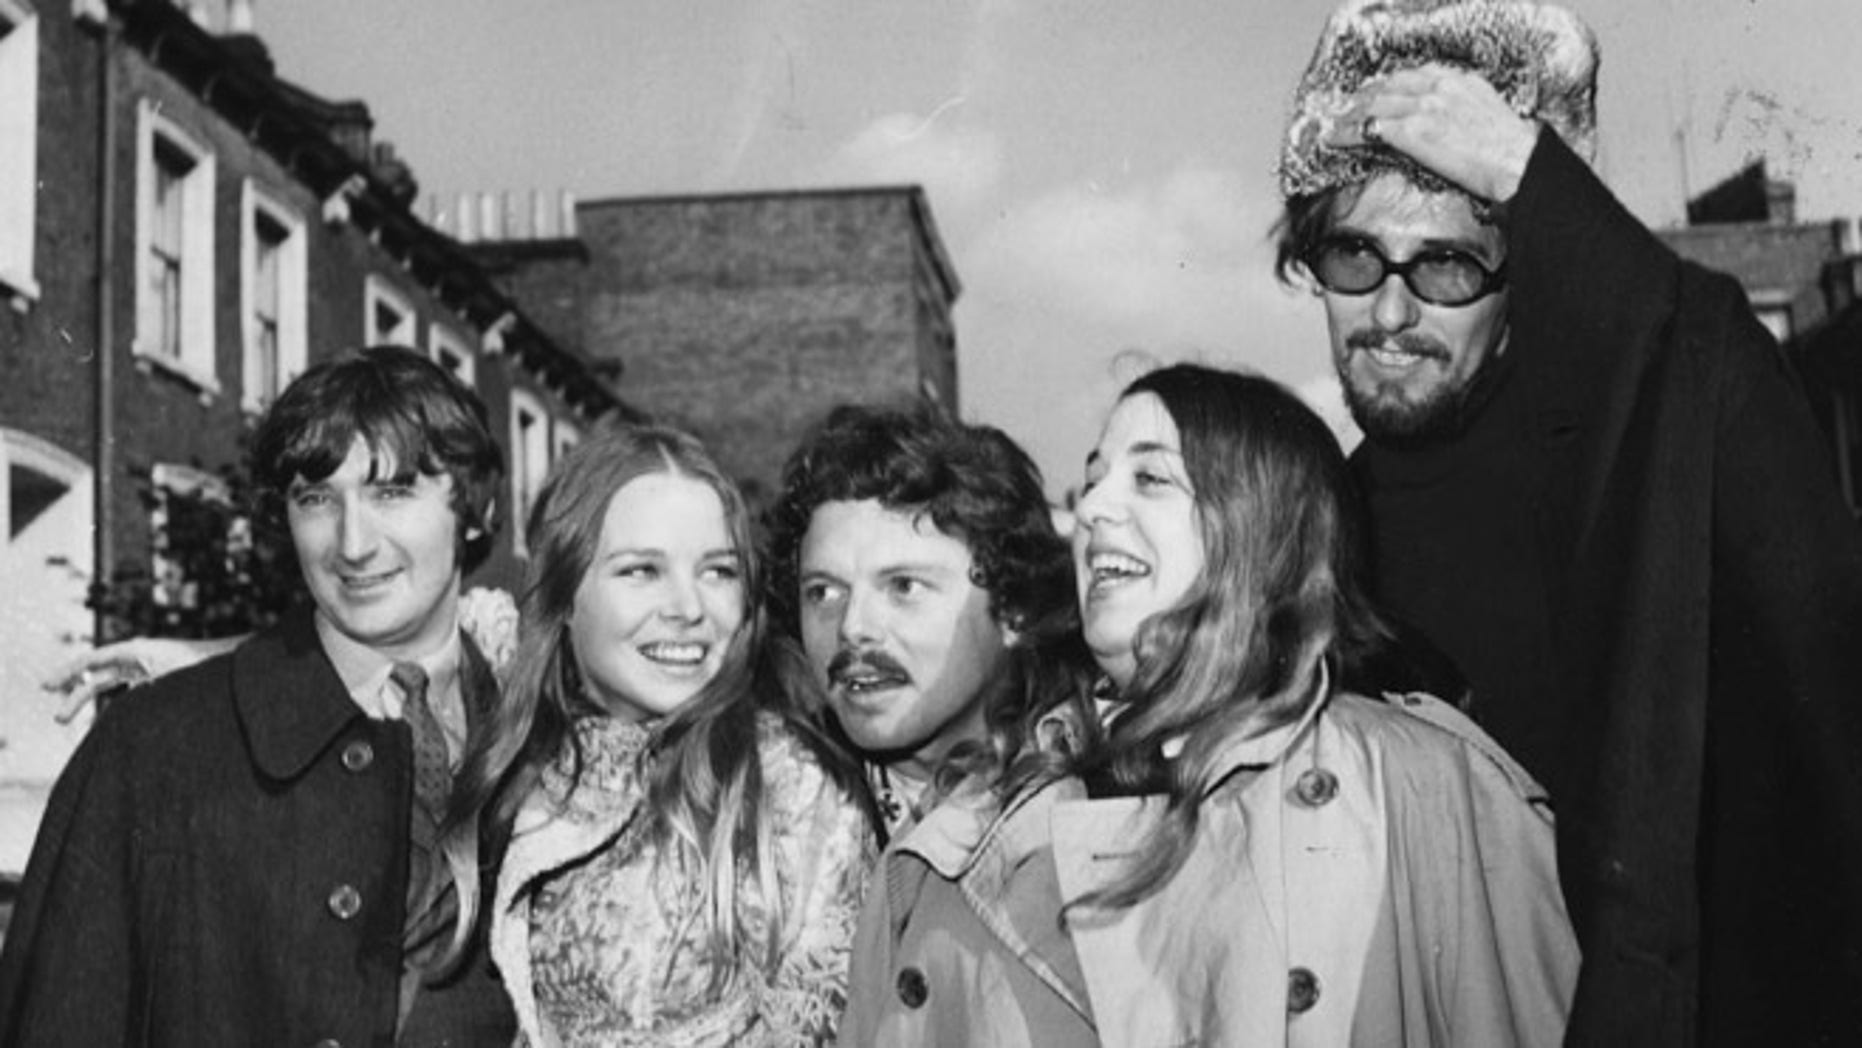 Scott McKenzie (center) with the Mamas and the Papas.